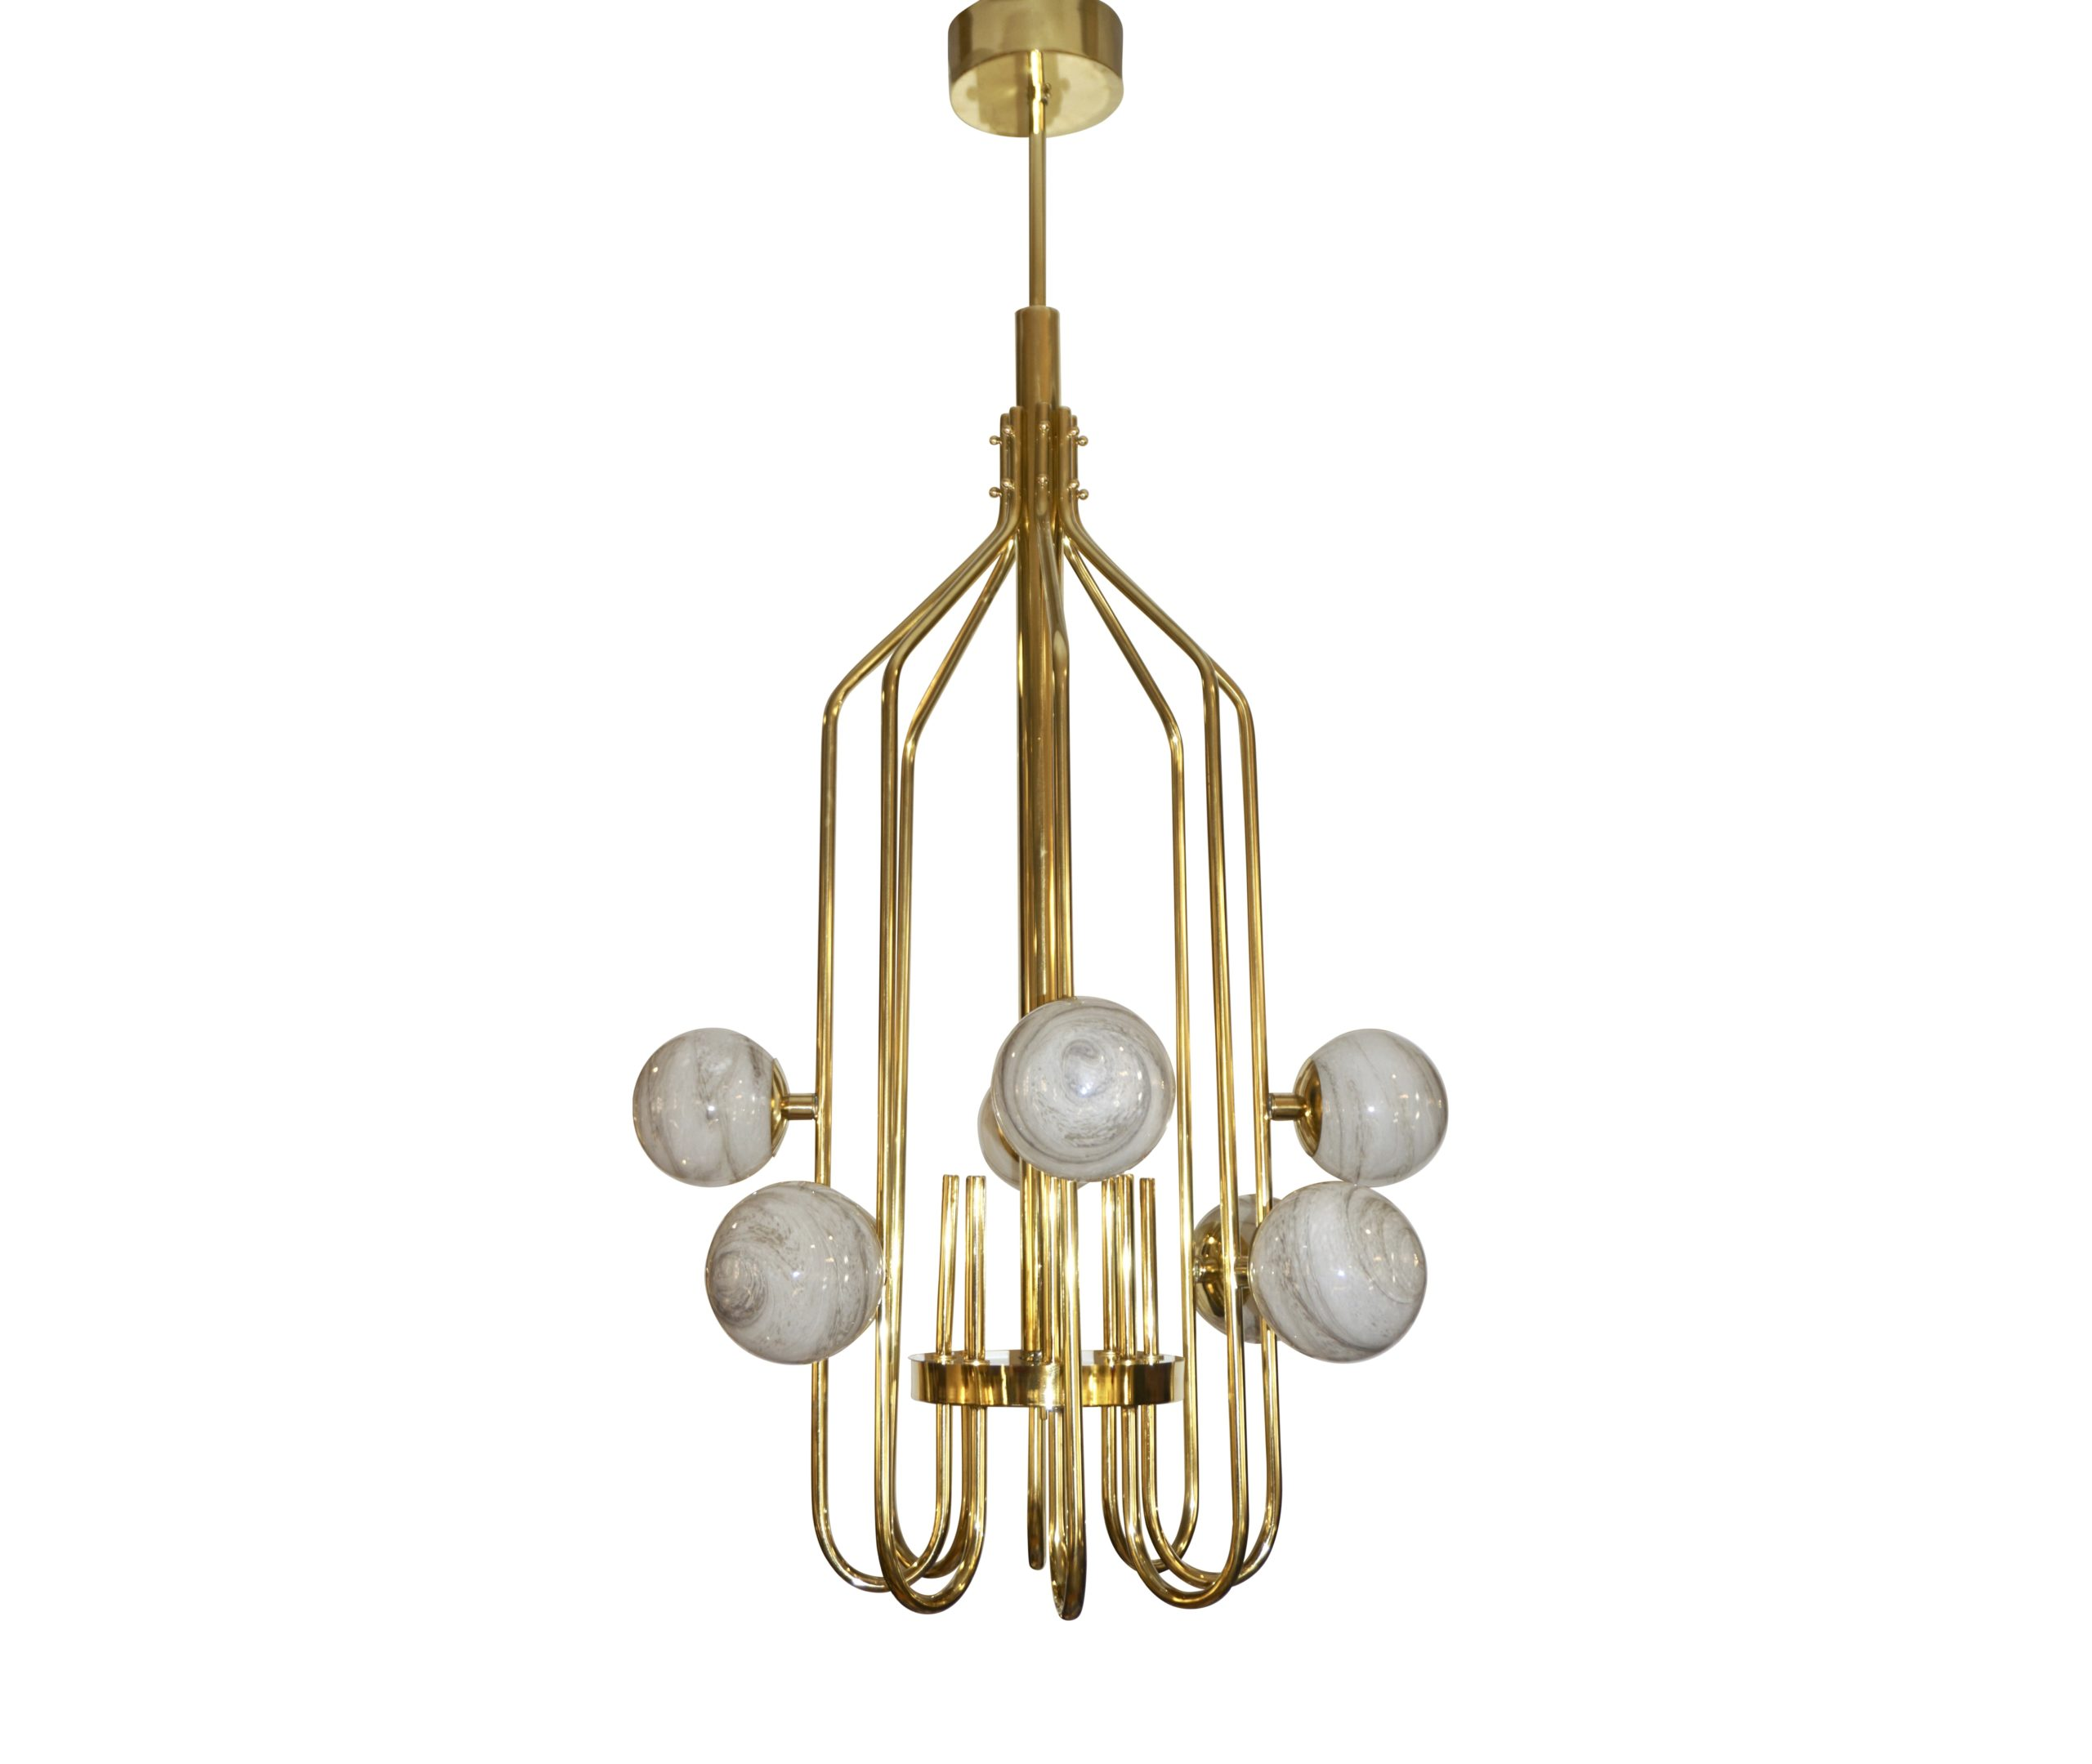 cosulich_interiors_and_antiques_products_new_york_design_bespoke_italian_alabaster_white_murano_glass_brass_curved_globe_chandelier-scaled-1